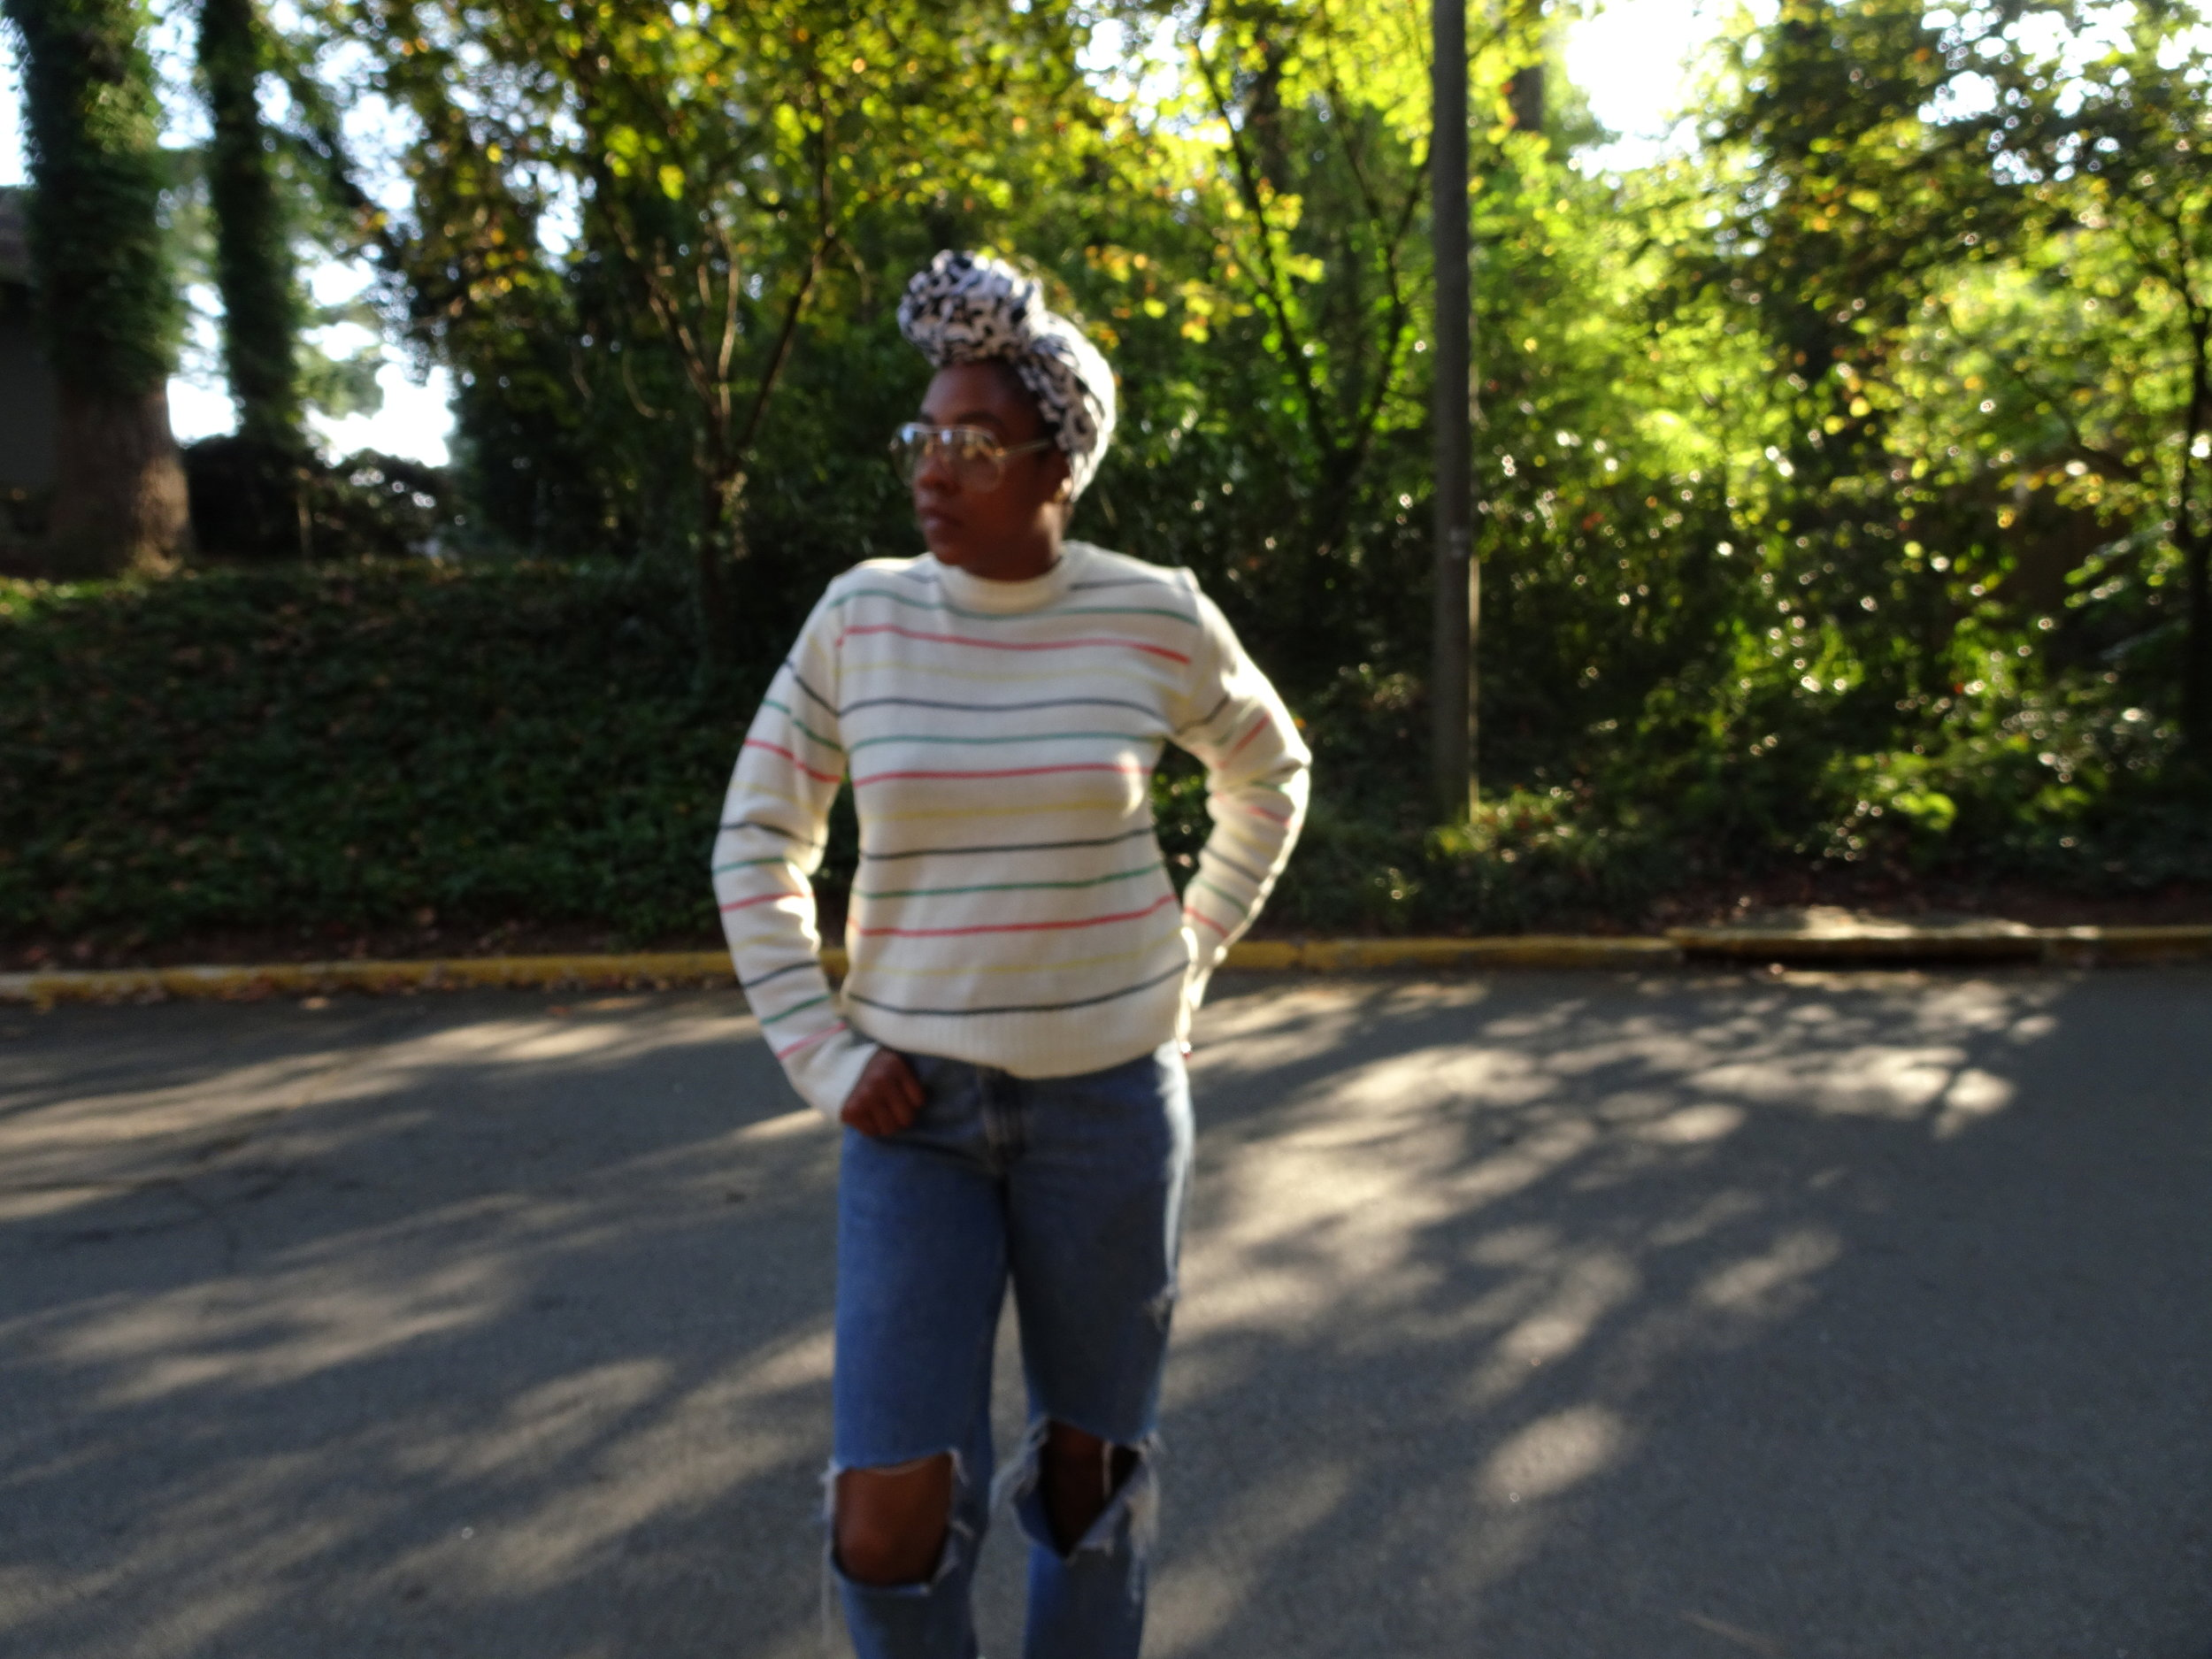 Sweater: Thrift; Jeans: Vintage Levi's; Head Scarf: The Wrap Life; Glasses: Natural Girls Rock